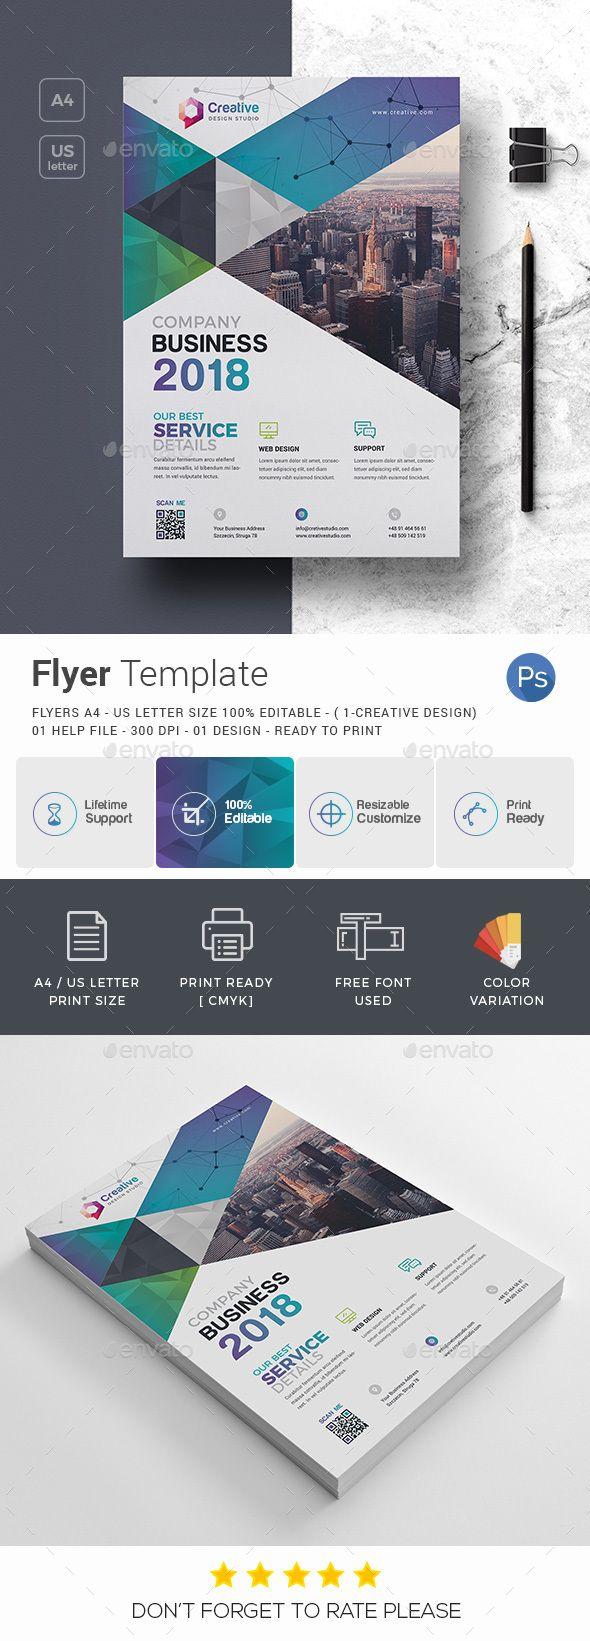 Business Flyer | Business flyer templates, Business flyers and Flyer ...